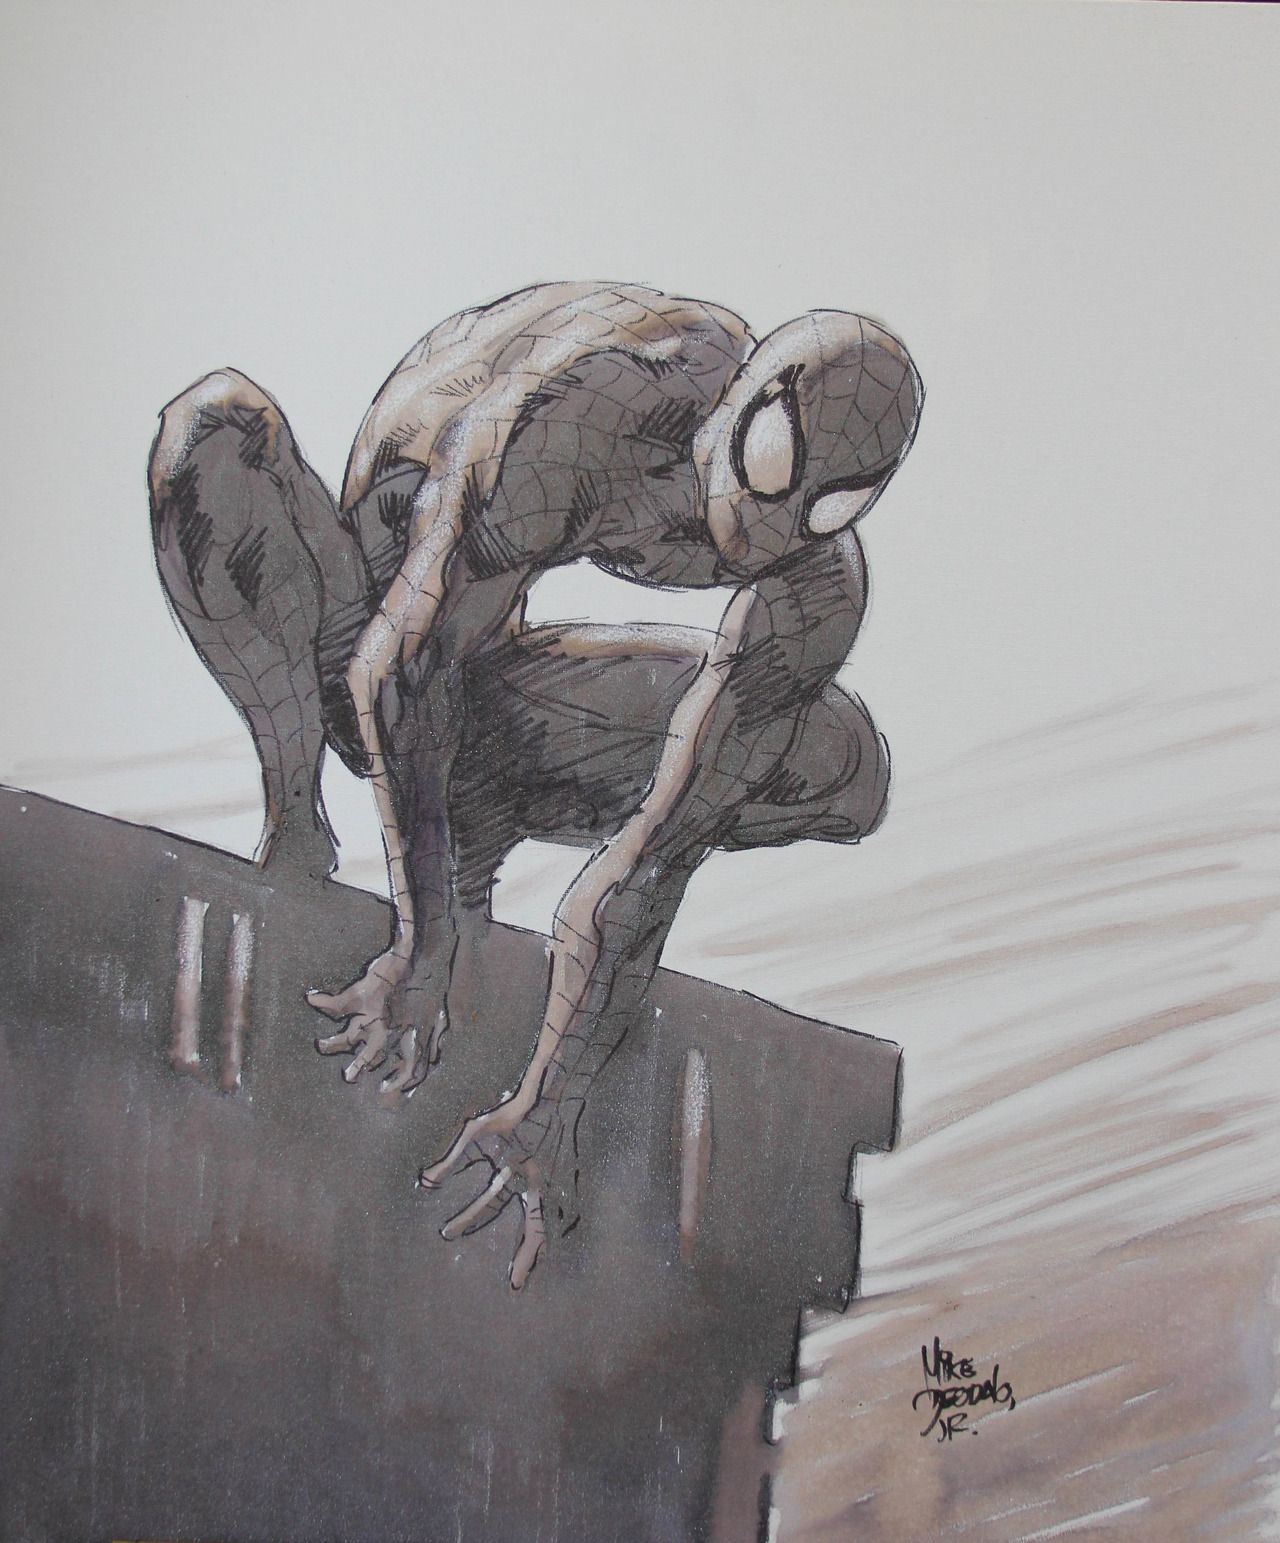 Spider-Man by Mike Deodato Jr. (water colour on canvas)